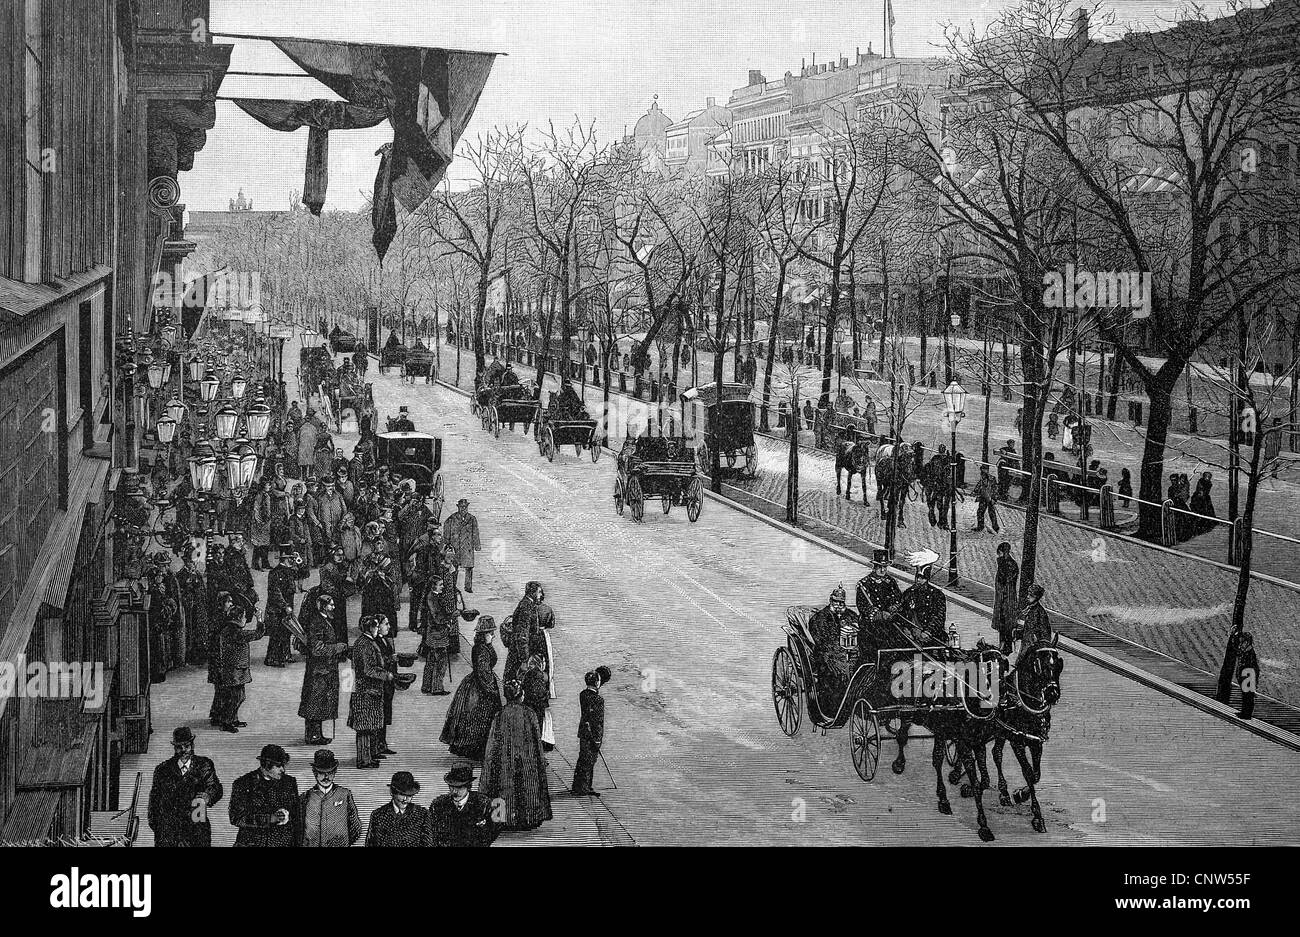 The emperor at the exit of Unter den Linden in Berlin, Germany, historical engraving, 1880 - Stock Image